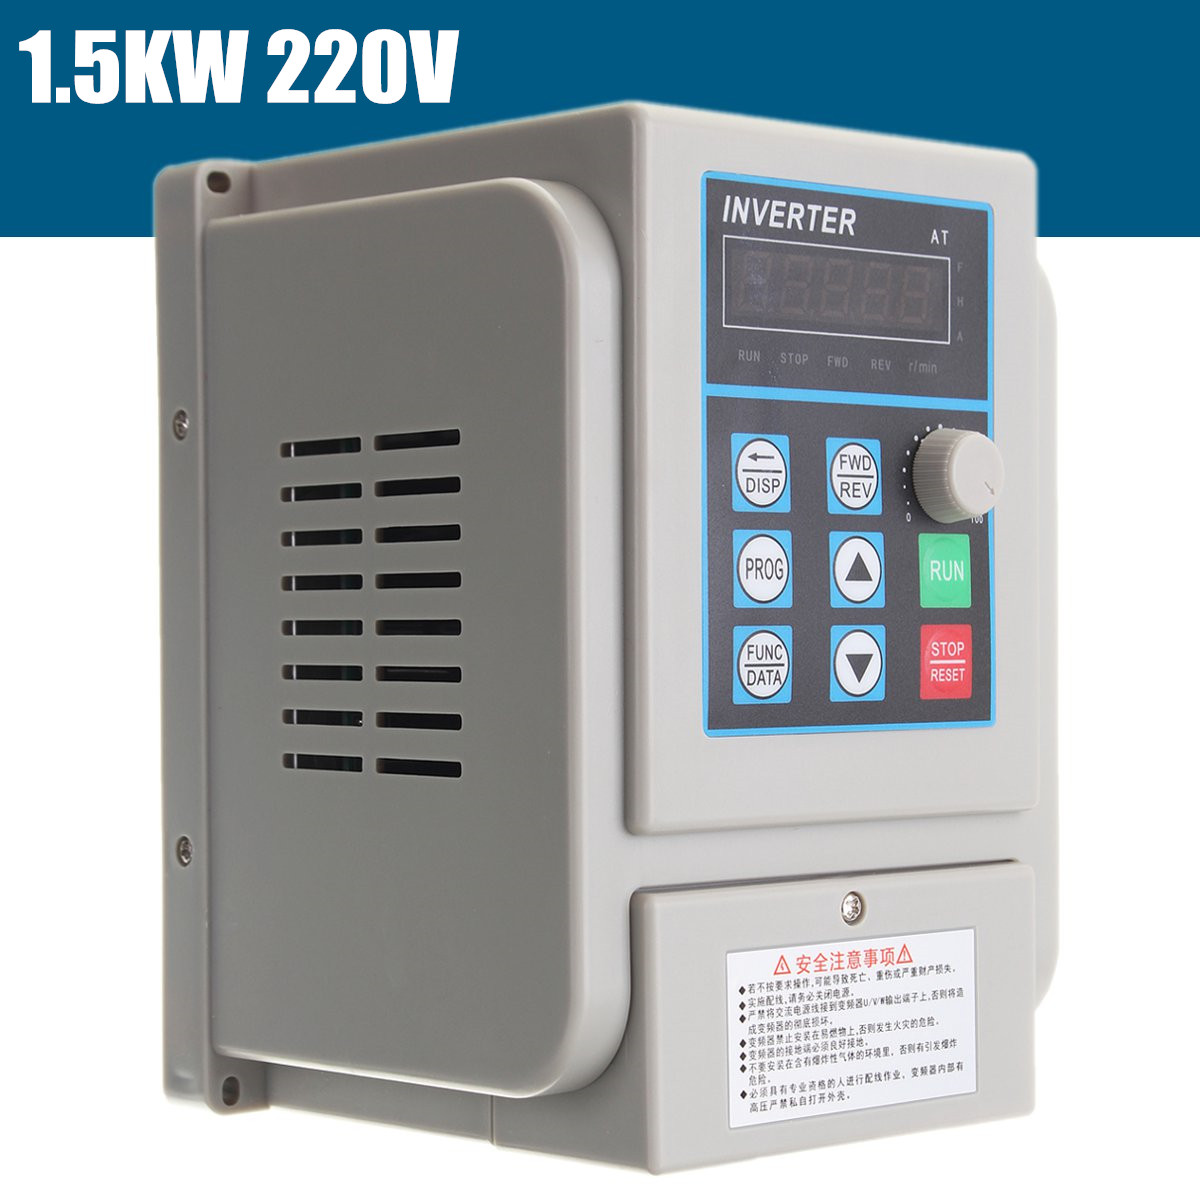 CNC Spindle motor speed control 1.5kw 220V VFD Variable Frequency Drive VFD 2HP frequency inverter for motor New Arrival new variable frequency drive vfd inverter 1 5kw 2hp 220v 7a 1 5kw inverter with potentiometer knob 220v ac